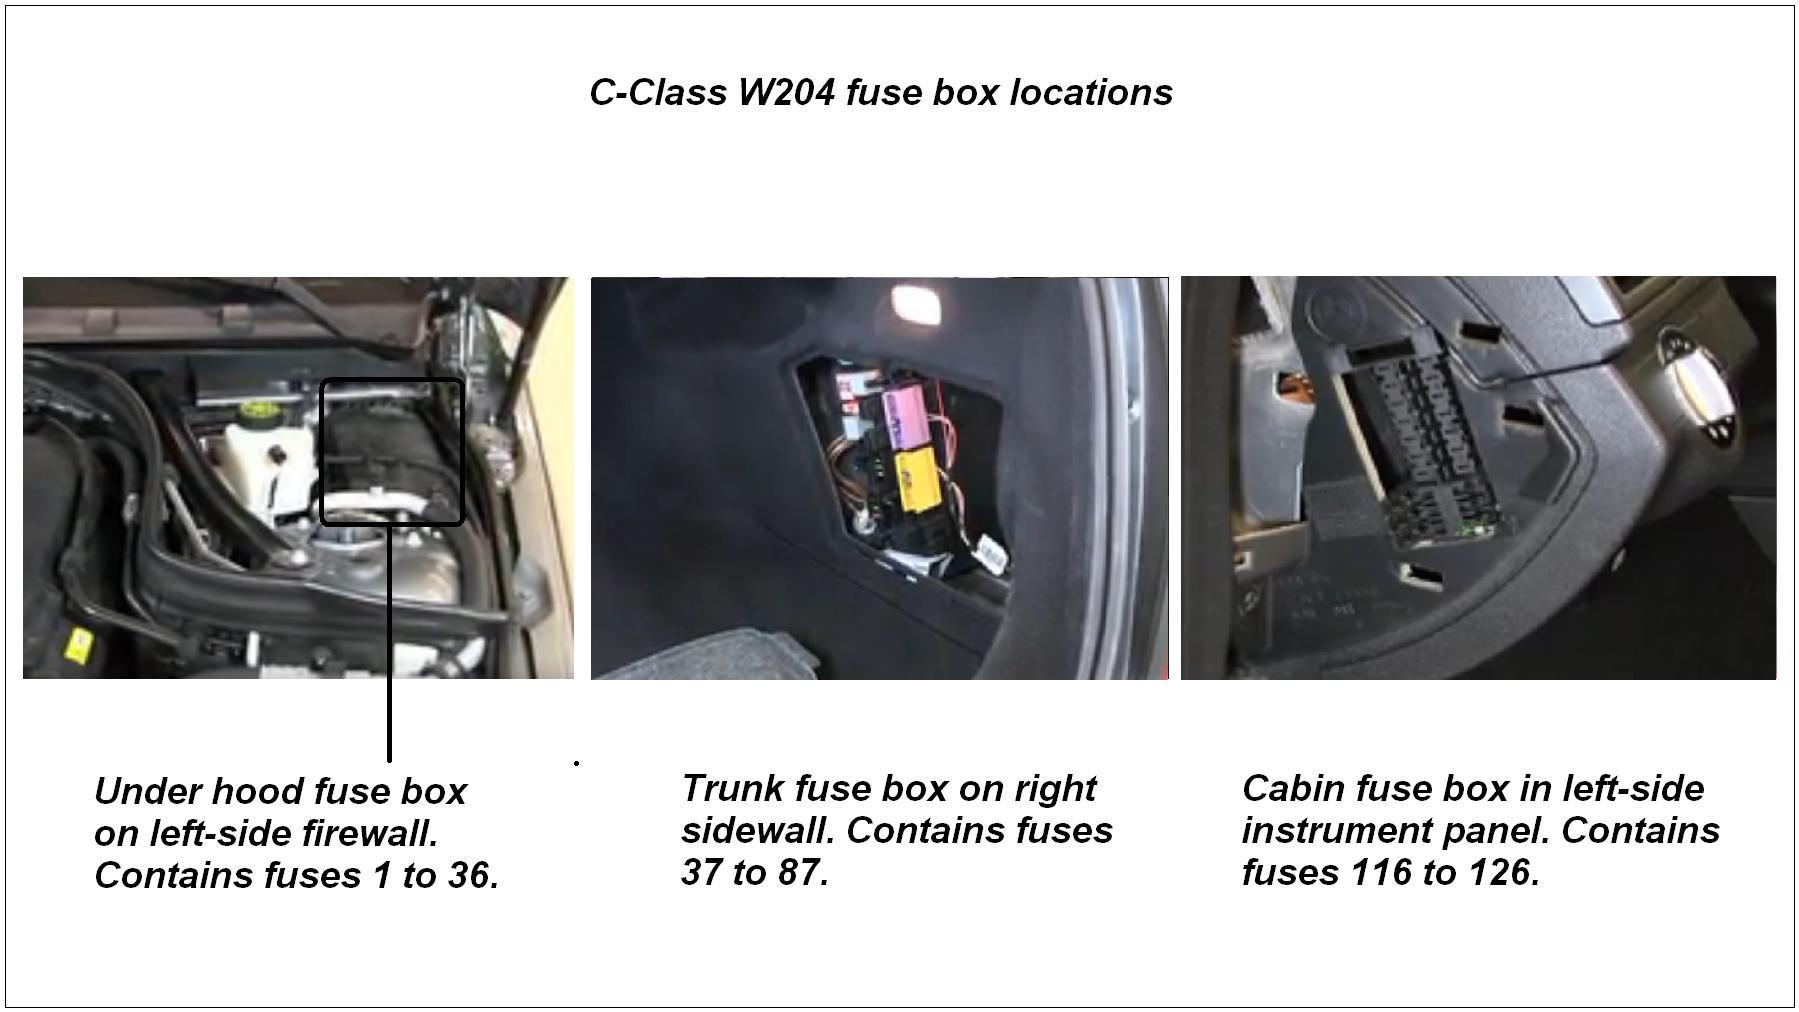 location of w204 fuse boxes